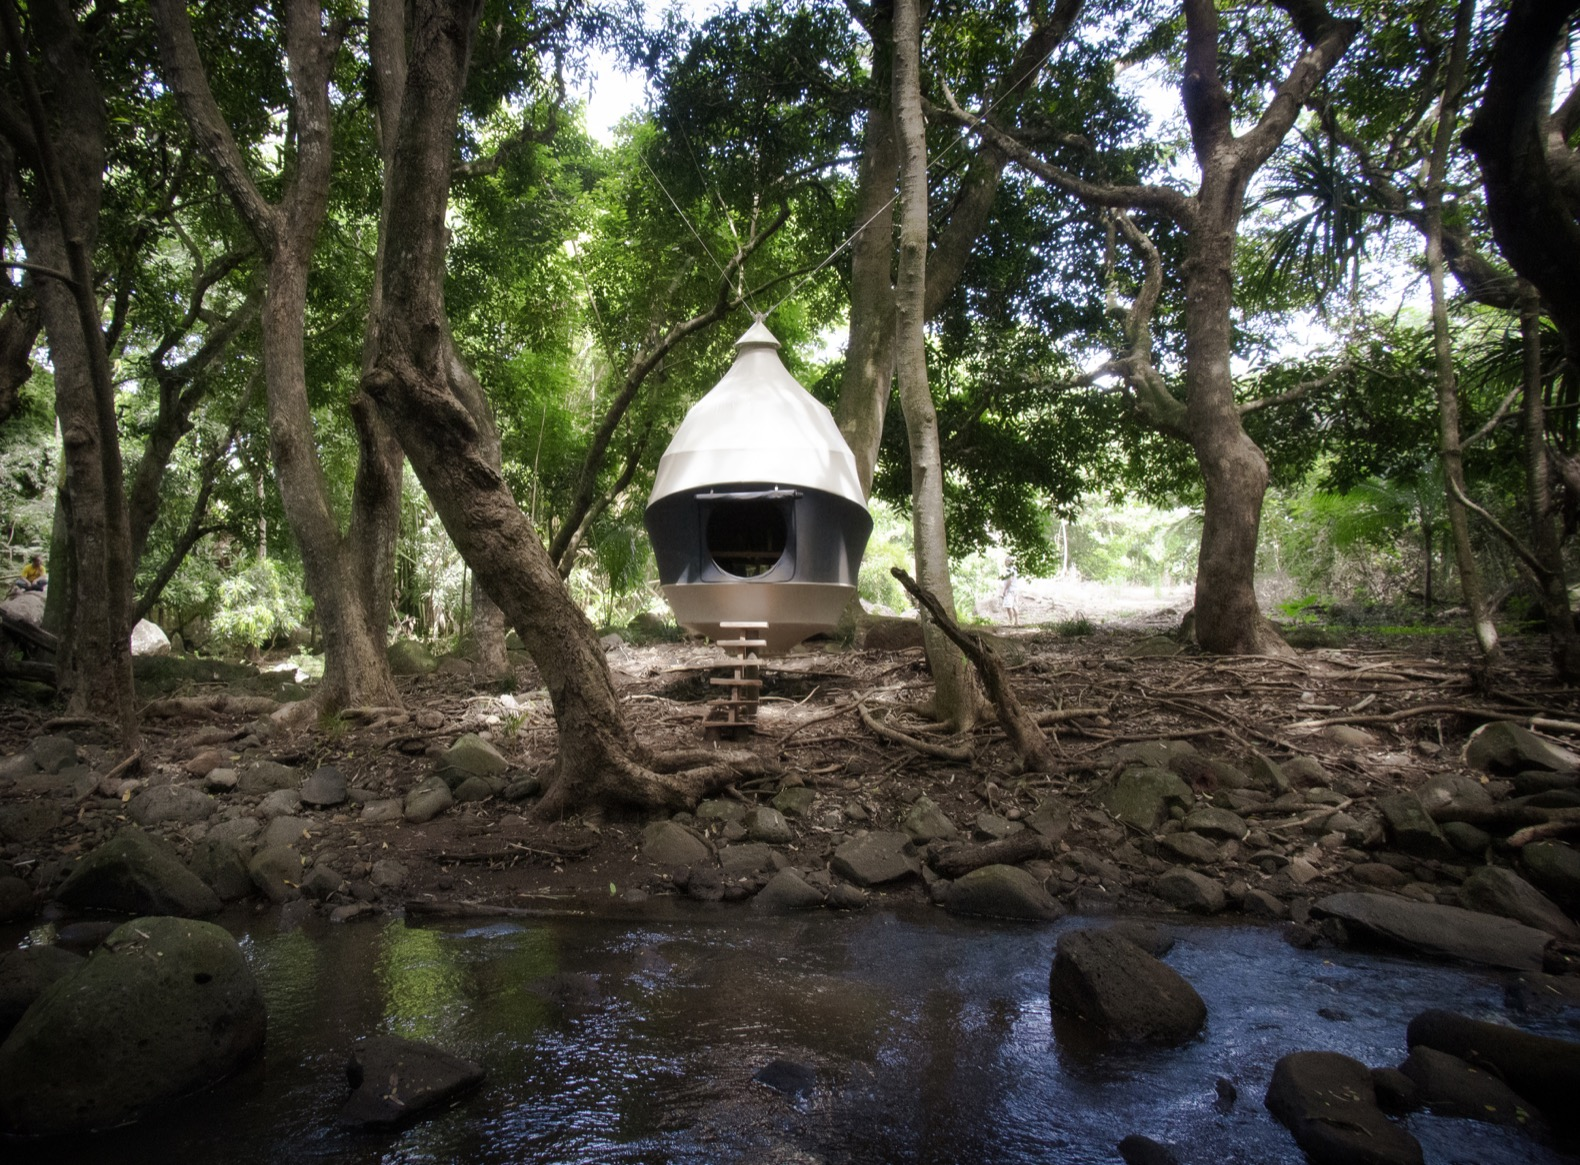 Cozy pop-up Seedpods let you escape into nature with a minimal footprint